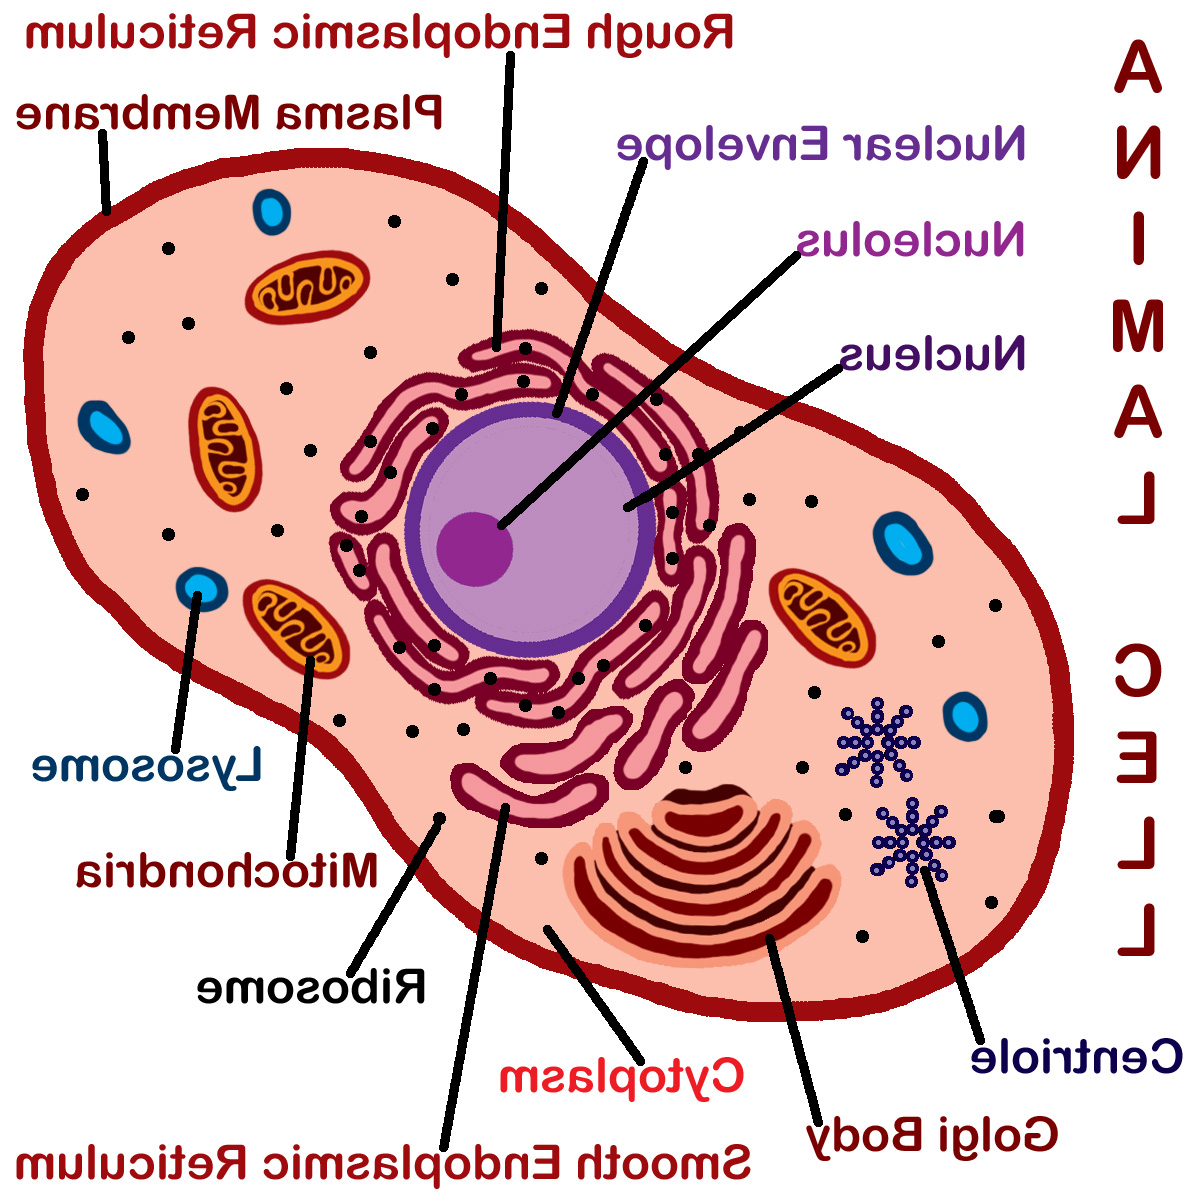 Animal cell drawing at getdrawings free for personal use 1200x1200 animal cell drawing with labels animal cell diagrams to print ccuart Image collections